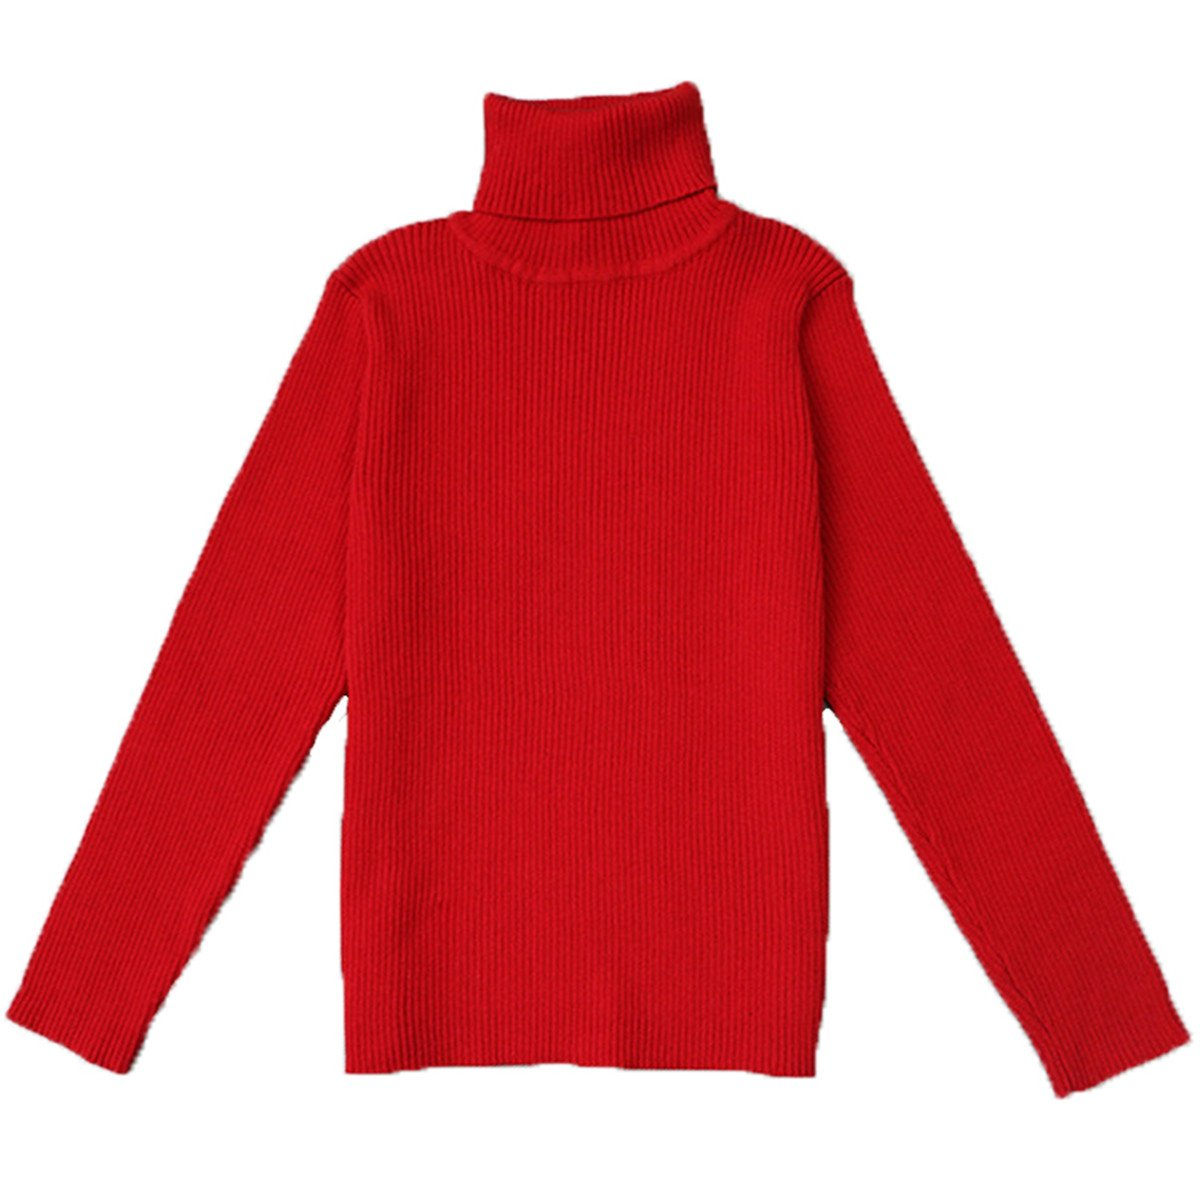 Little Girls Turtleneck Long Sleeve Sweater Basic Solid Fine Knit Warm Sweatshirt